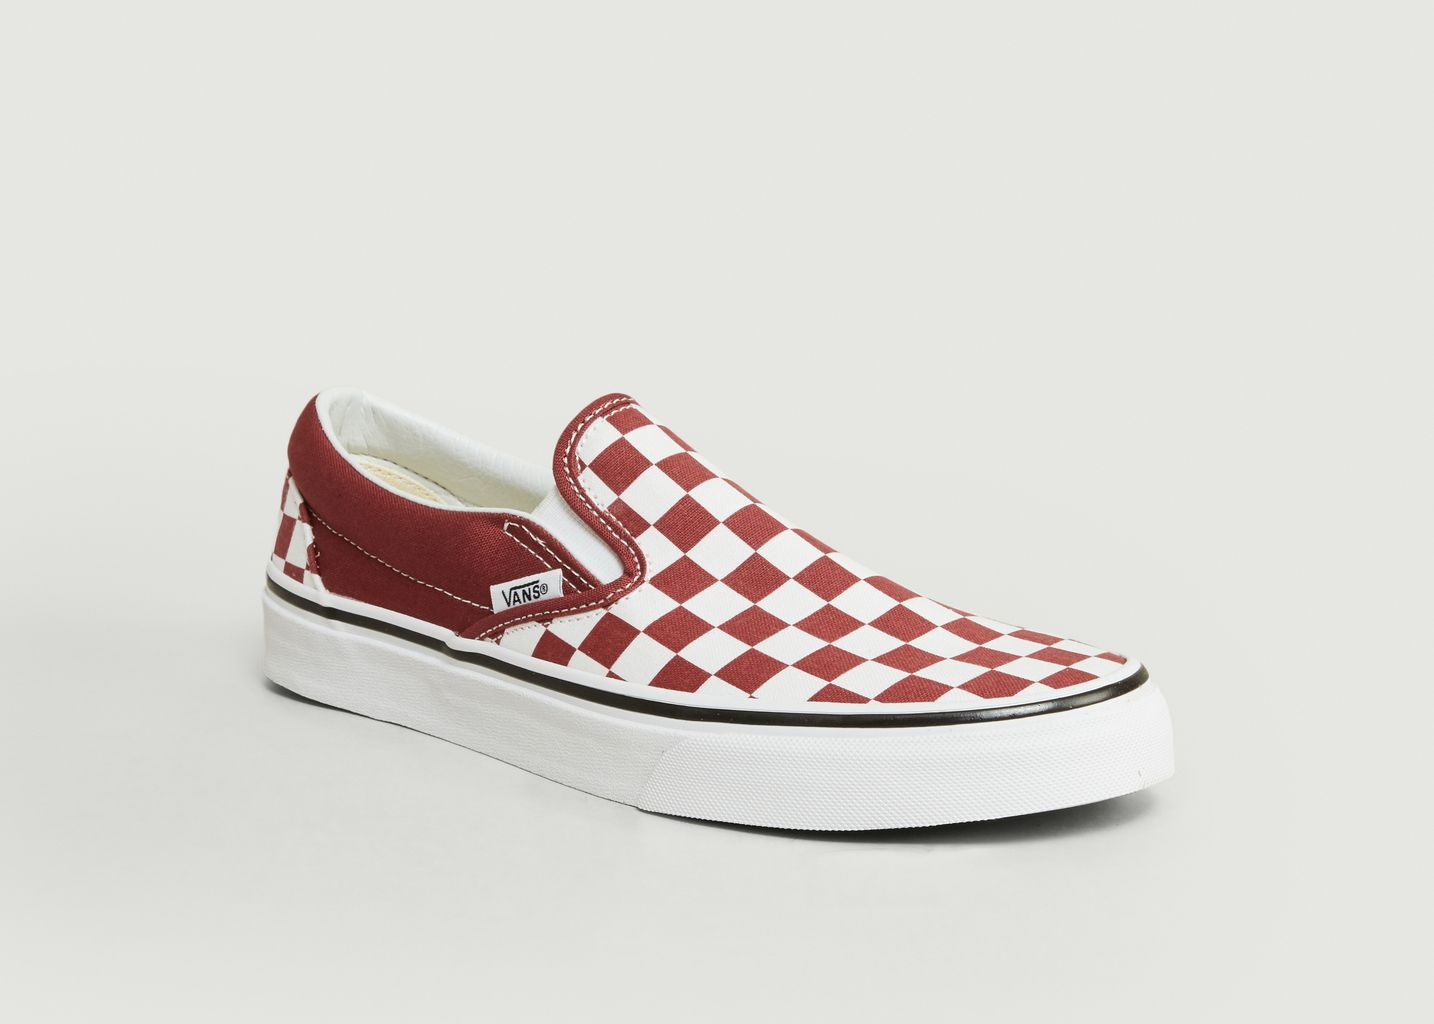 vans slip on carreaux rouge